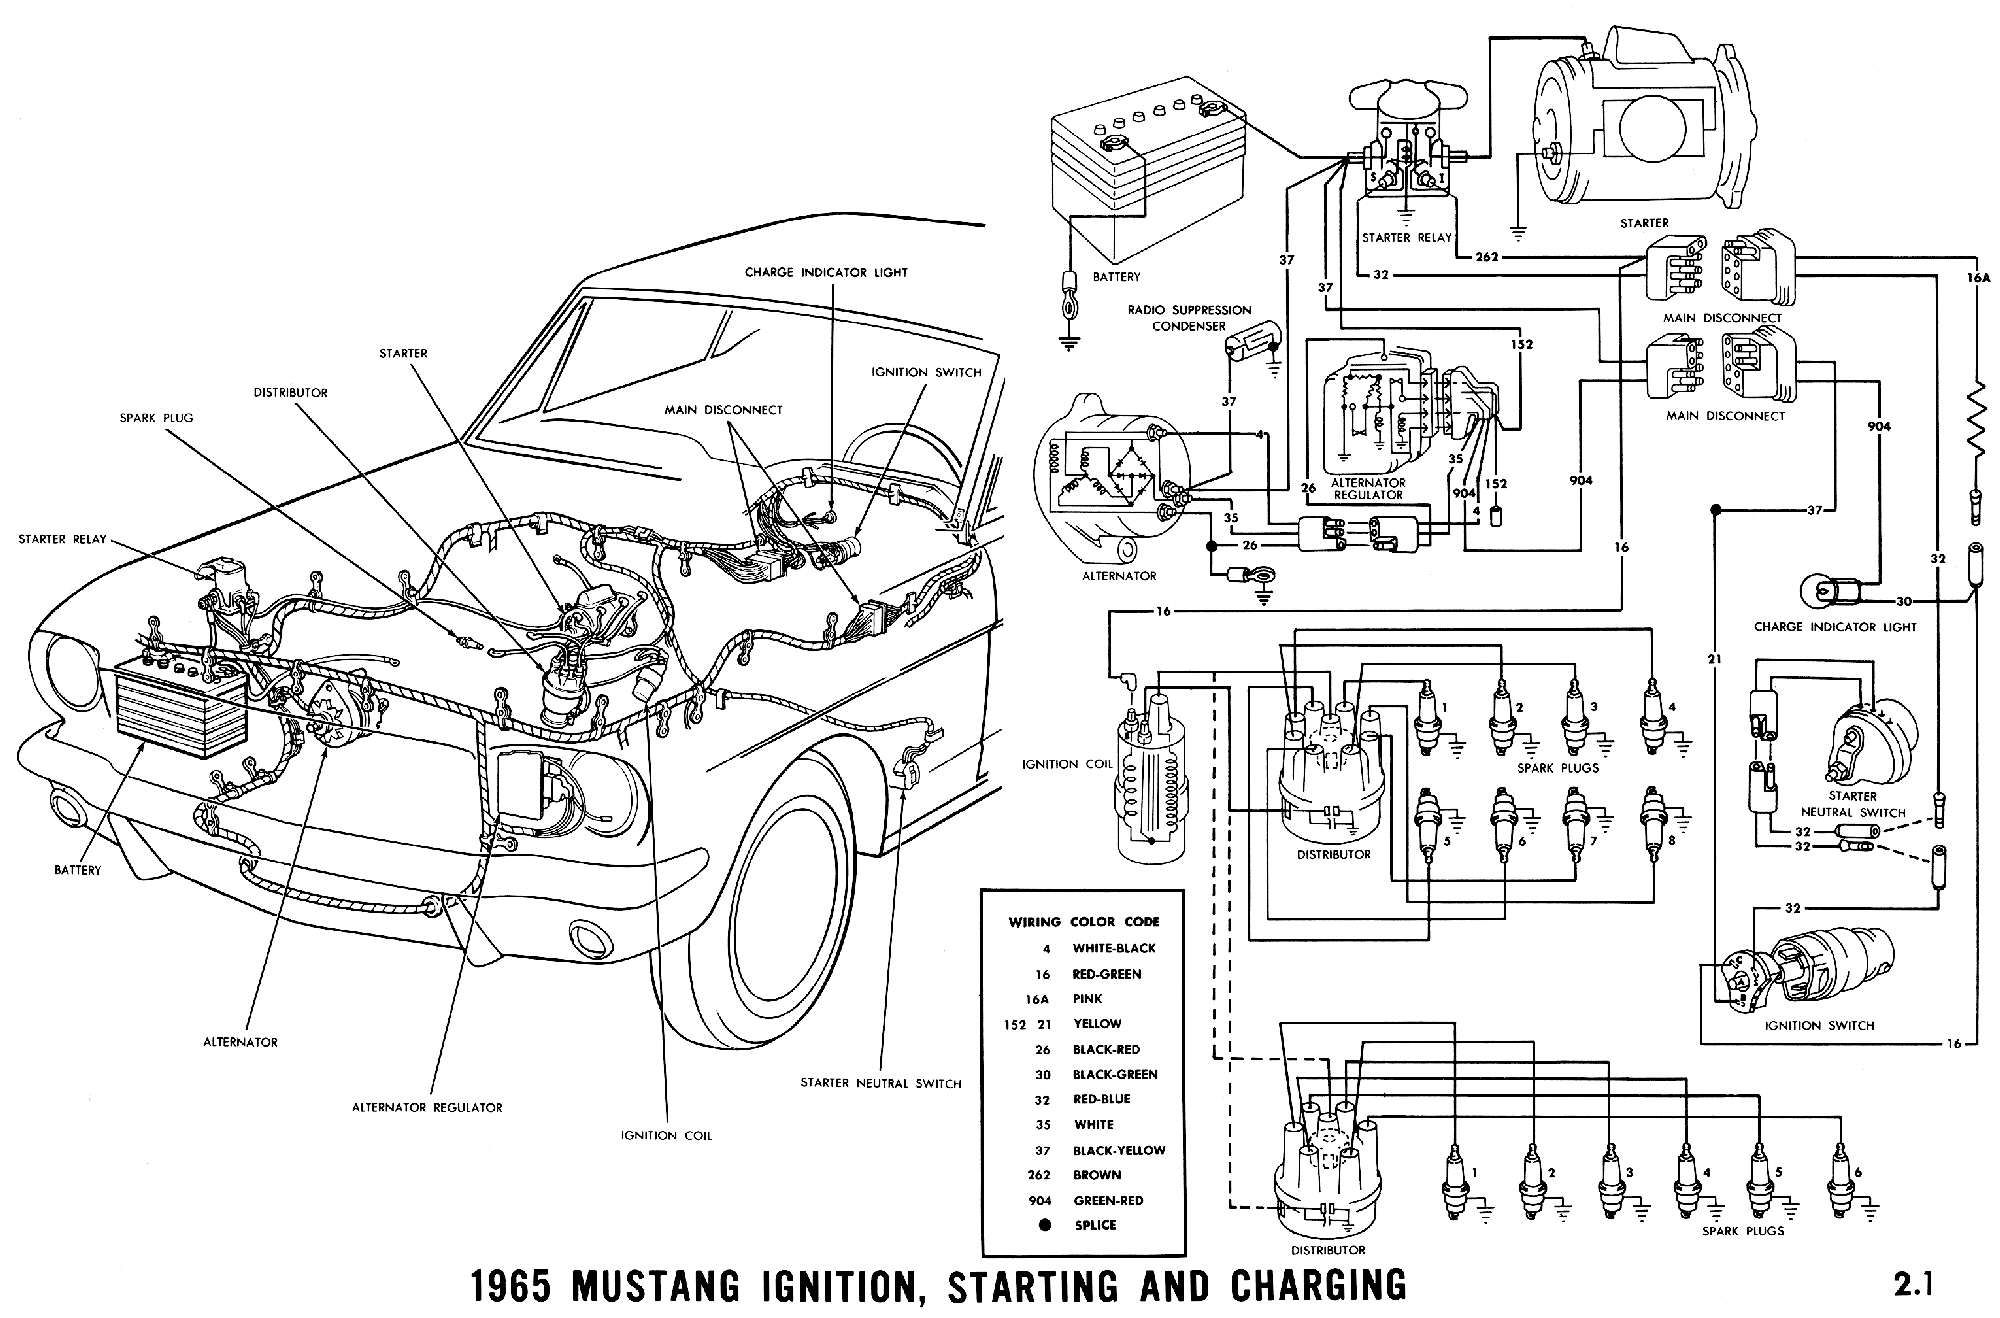 2b4c8d3809962afcbebfb7e8a60704ce 1965 mustang wiring diagrams average joe restoration mustang wiring diagram 1968 ford mustang coupe at bayanpartner.co